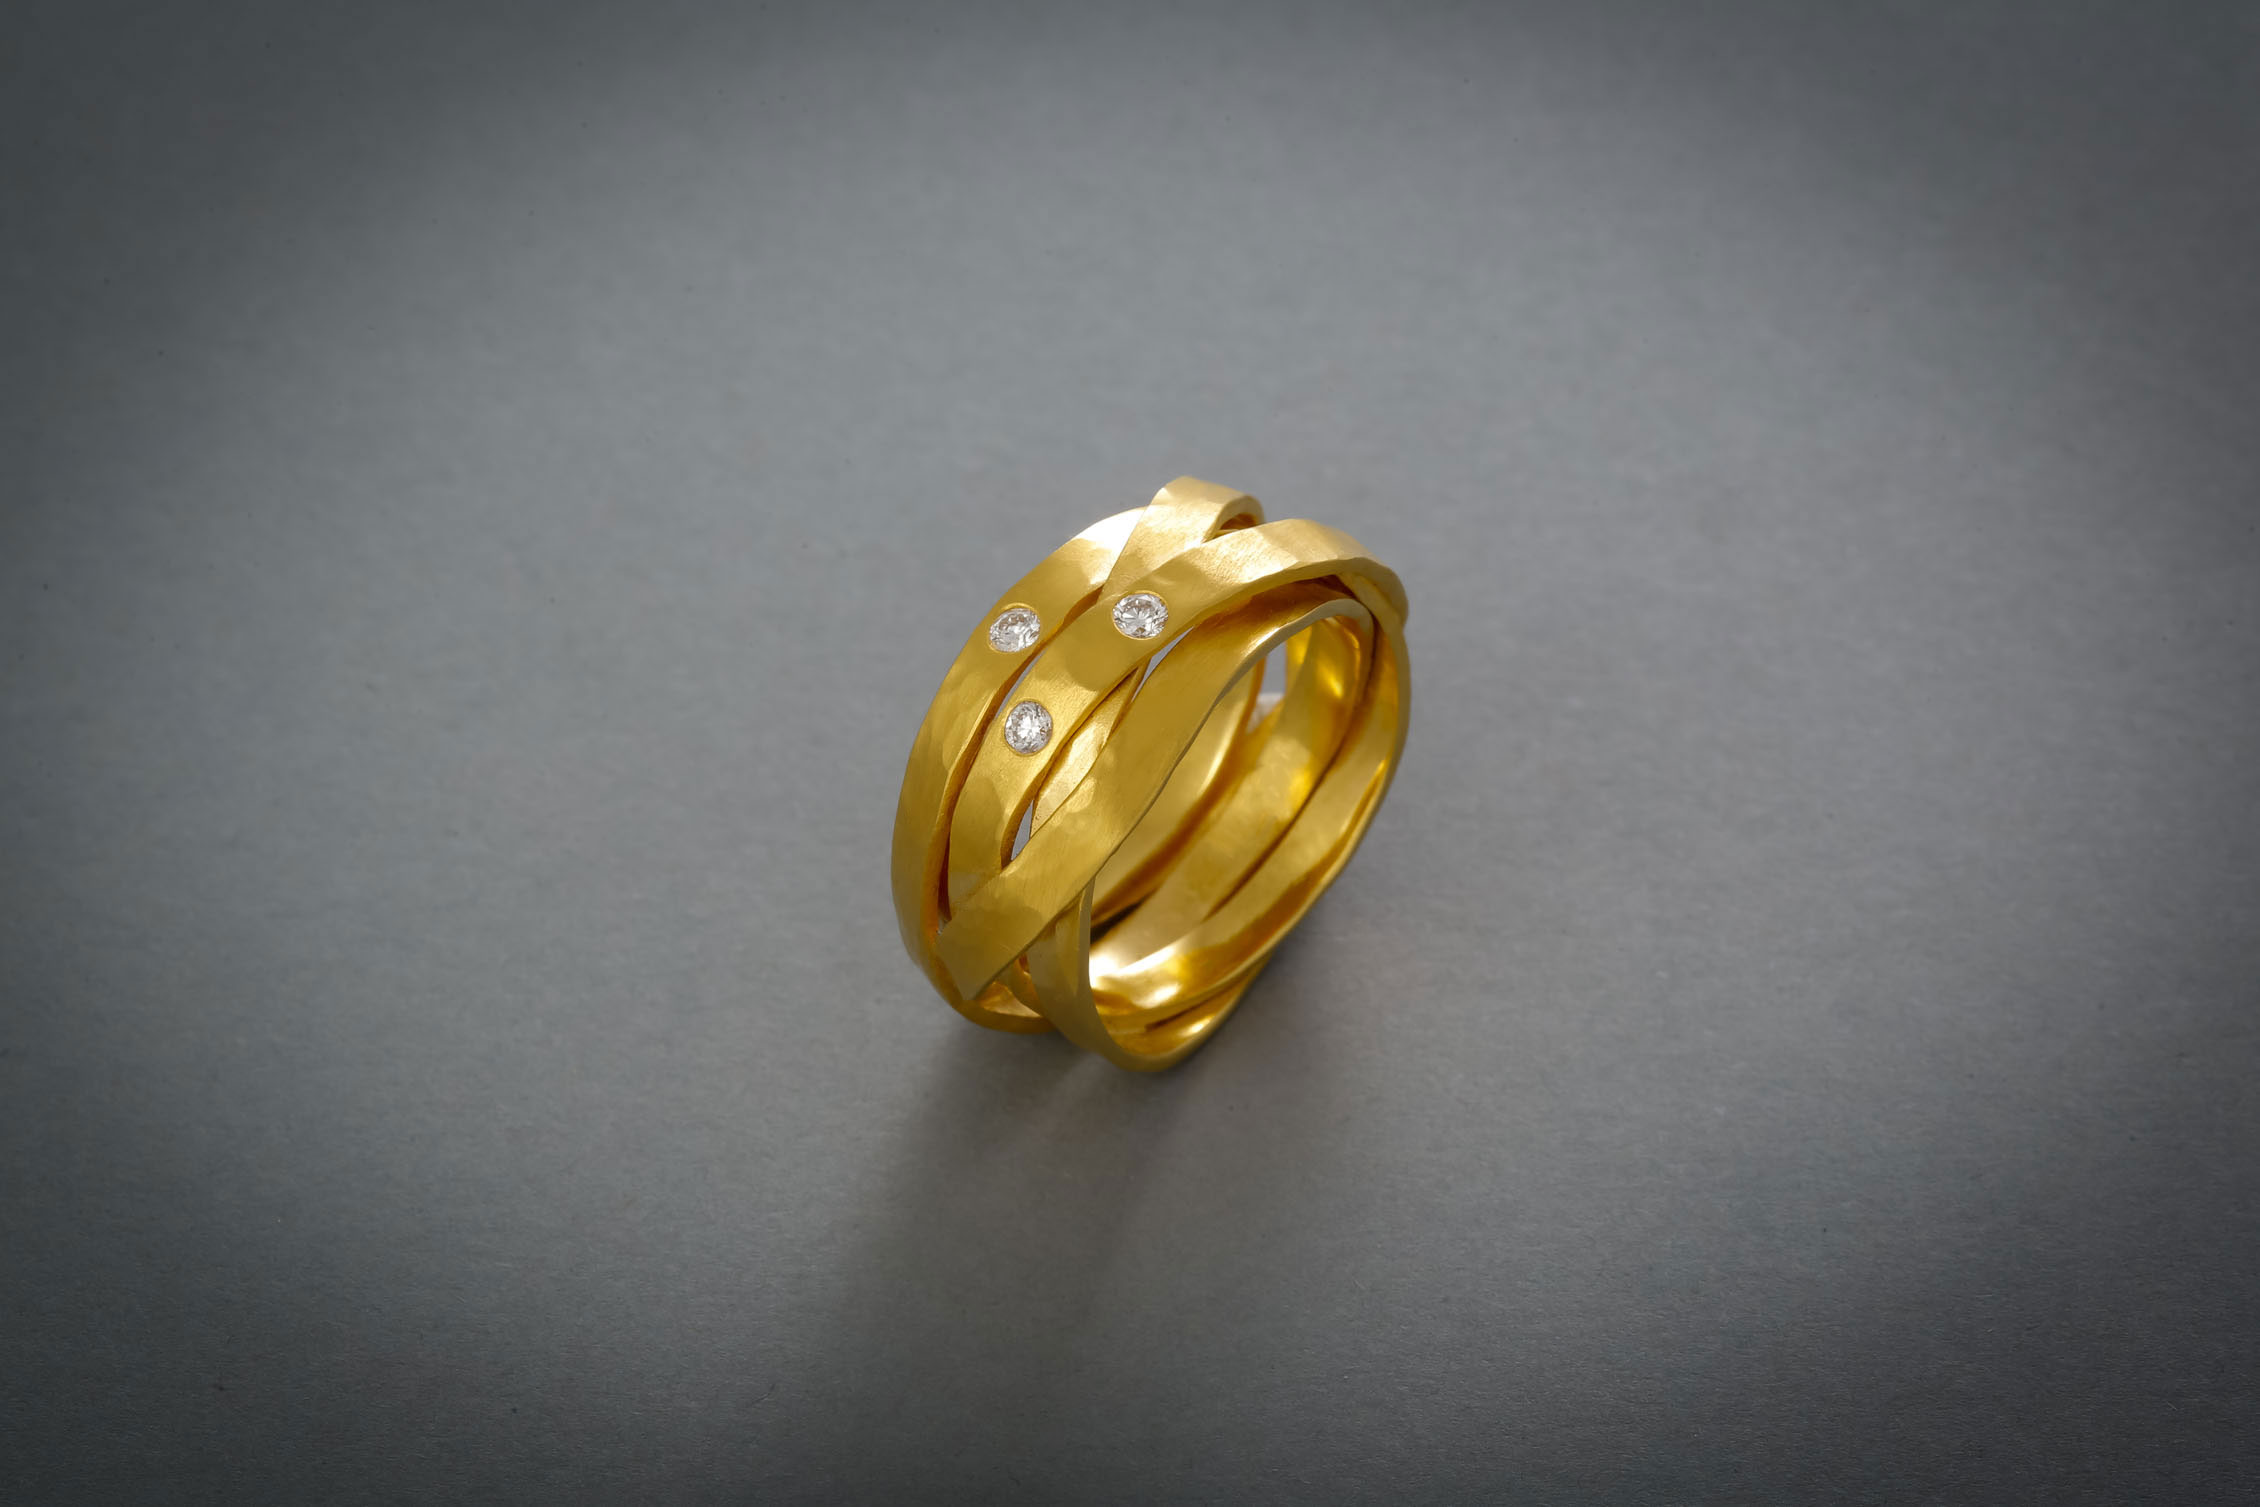 117 Wickelring, Gold, 3 Brillanten € 1366,-